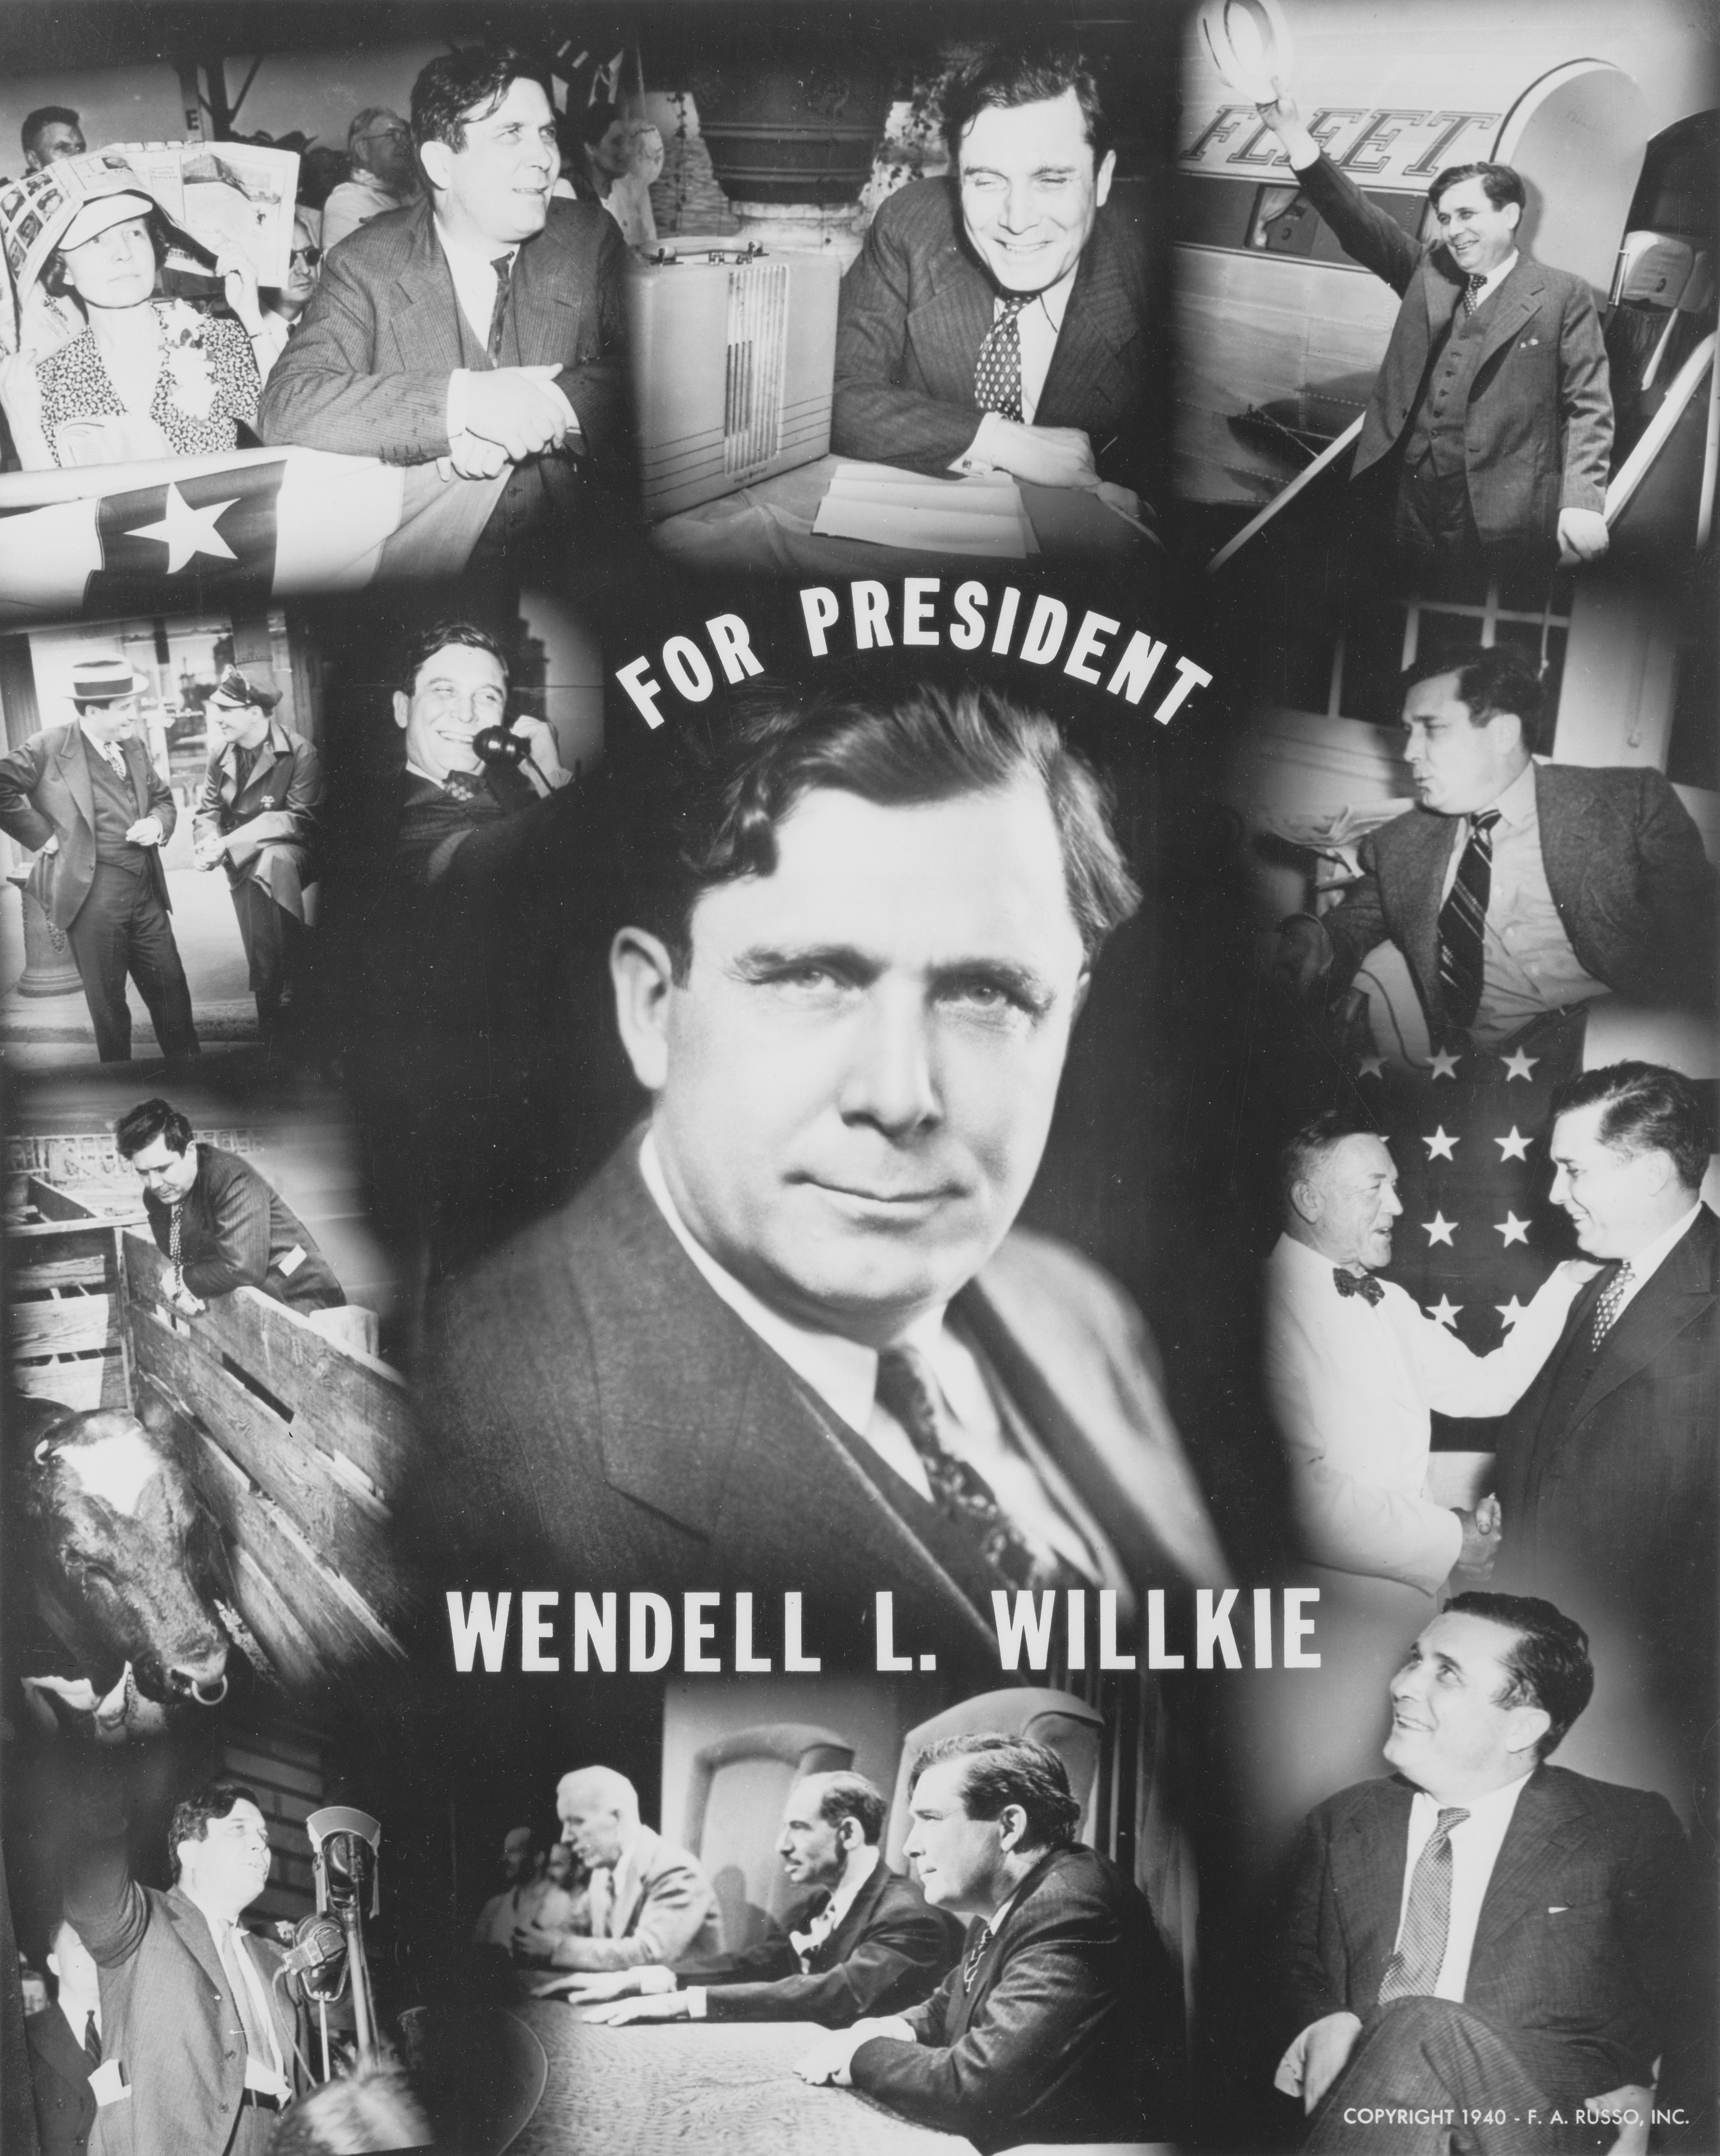 Wendell Wilkie 1940 Political Poster